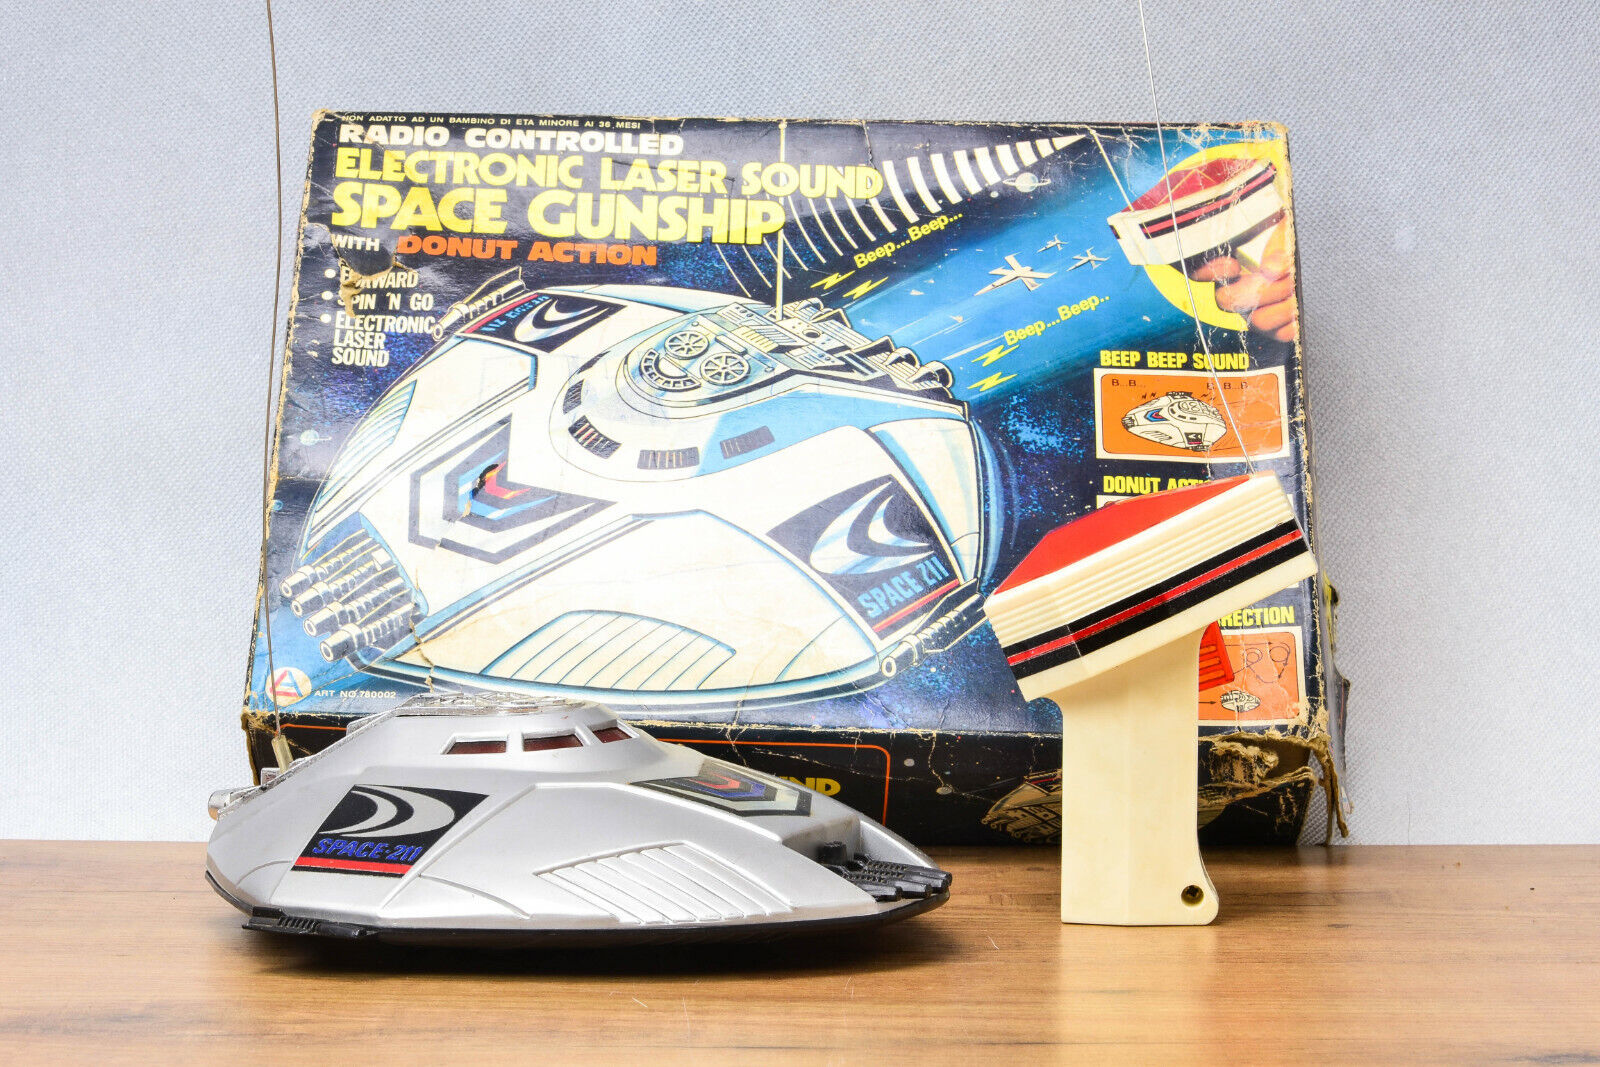 _AntiqueHong Kong leksakElectronic Laser Sound Space Gunship Battery ME Gammal MS